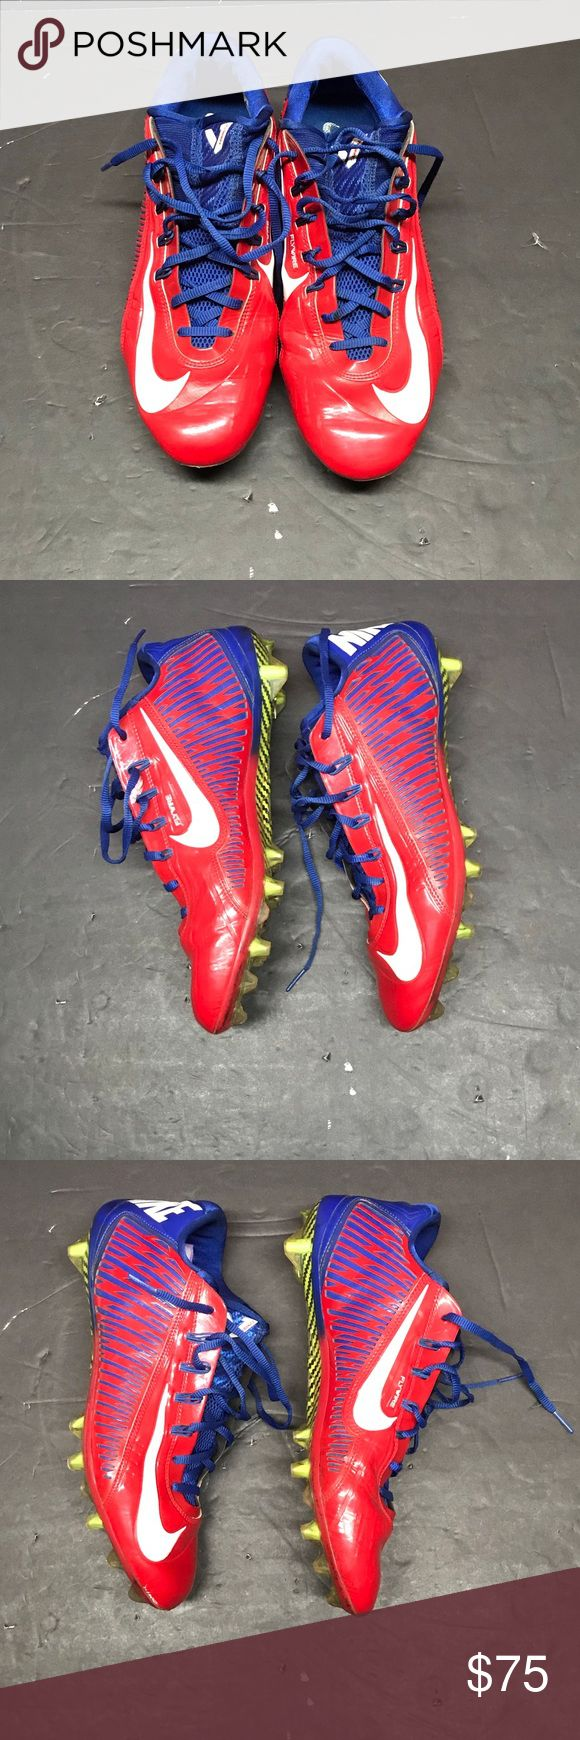 Nike Vapor Carbon 2.0 Men's Football Cleats Nike Vapor Carbon 2.0 Men's Football Cleats Mens size: 11.5 Colors: Red / White / Blue  Great used condition (see photos for condition)  Nike Vapor Carbon 2.0 Men's Football Cleat features a nano-lasered upper with zero-space fit for precise support, agility and speed during play. A combination of bladed and conical cleats creates incredible traction, and dynamic Flywire wraps the foot for a comfortable, supportive fit. Nike Shoes Athletic Shoes